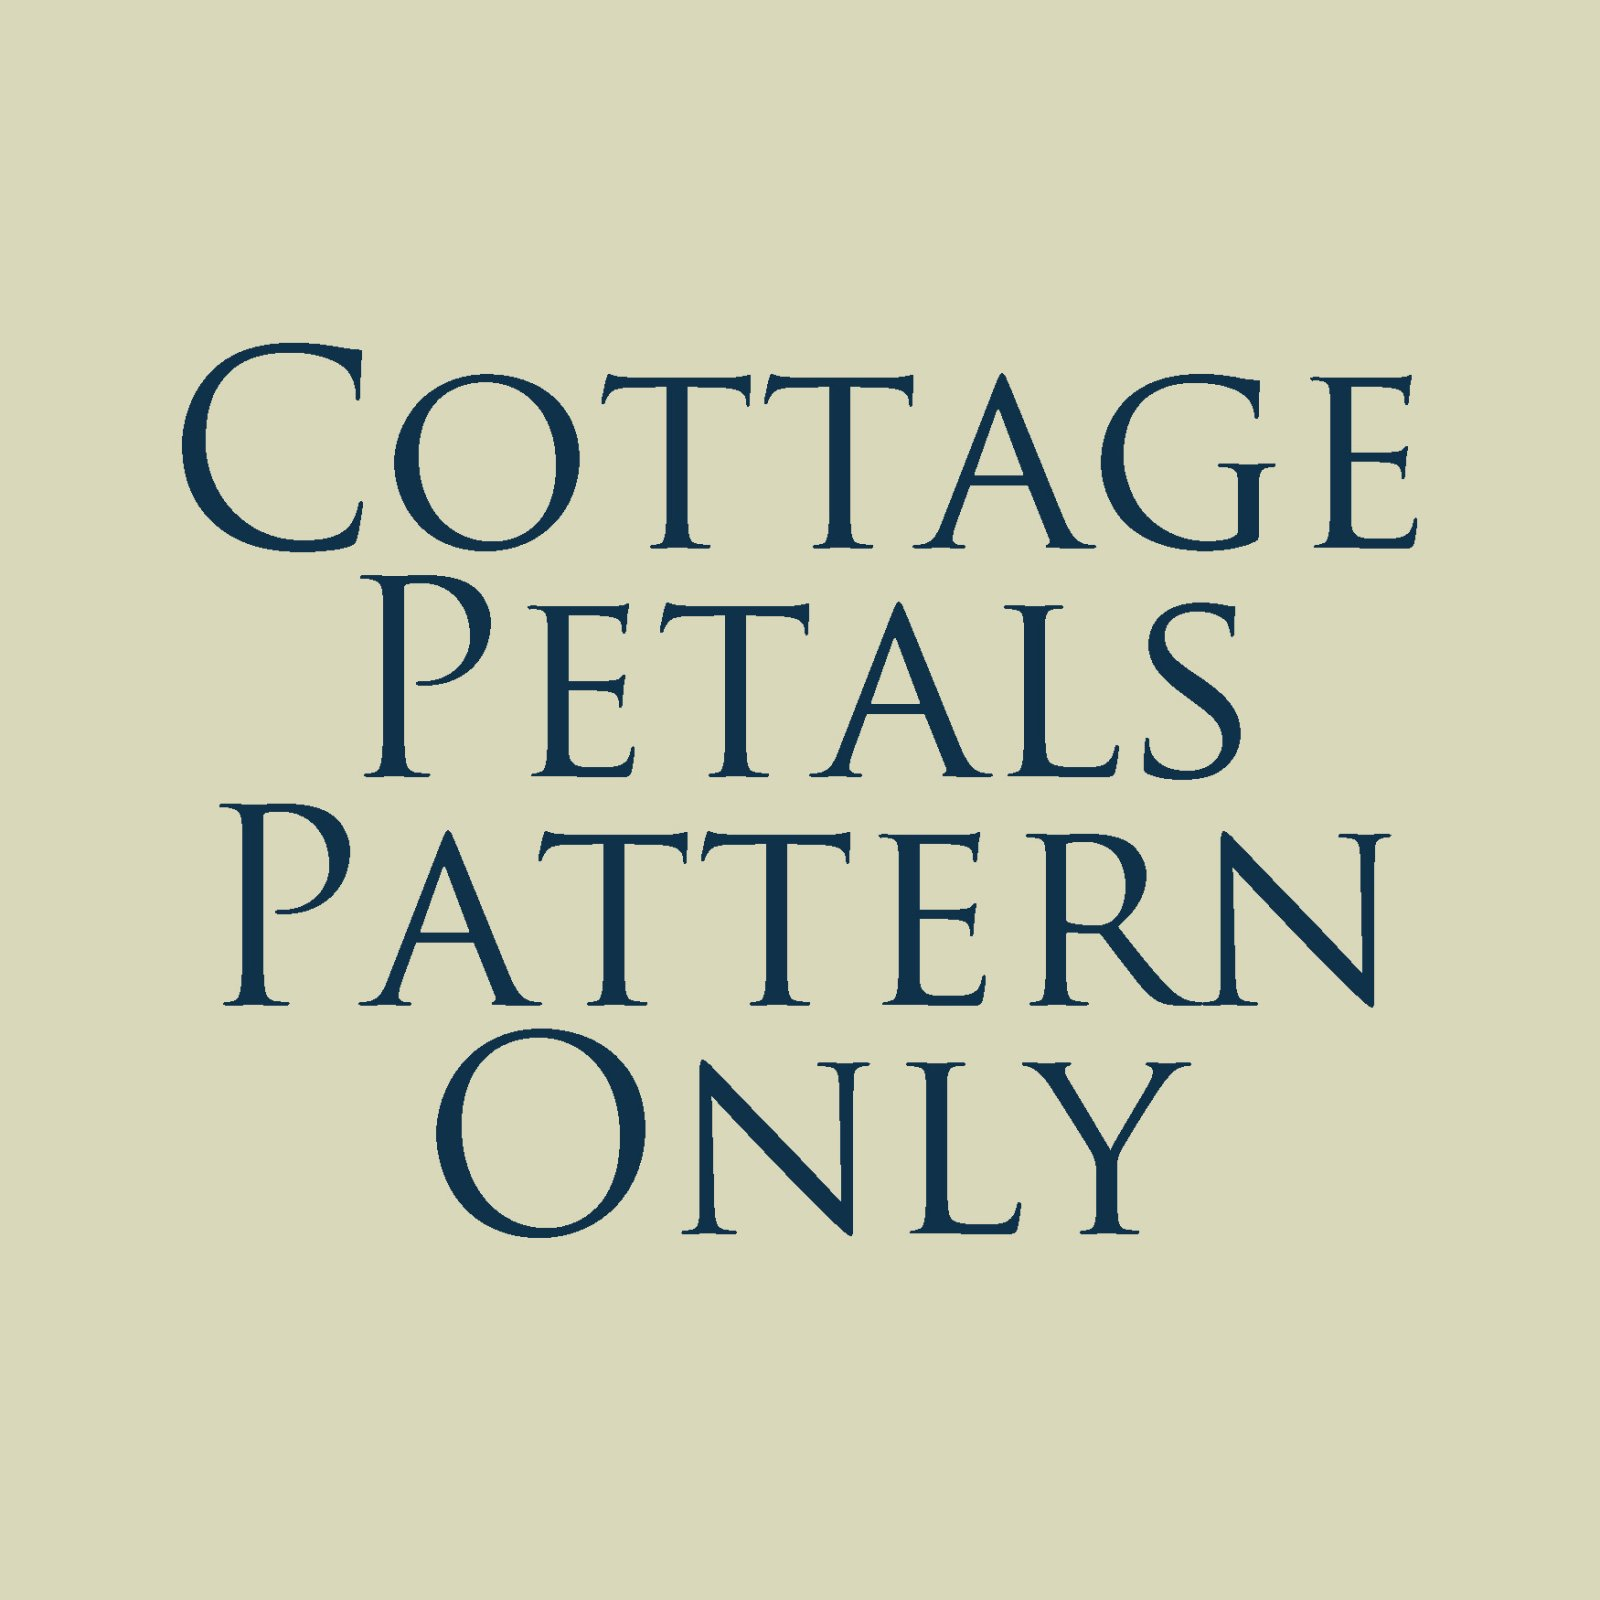 Cottage Petals Pattern Only - Details Coming Soon!